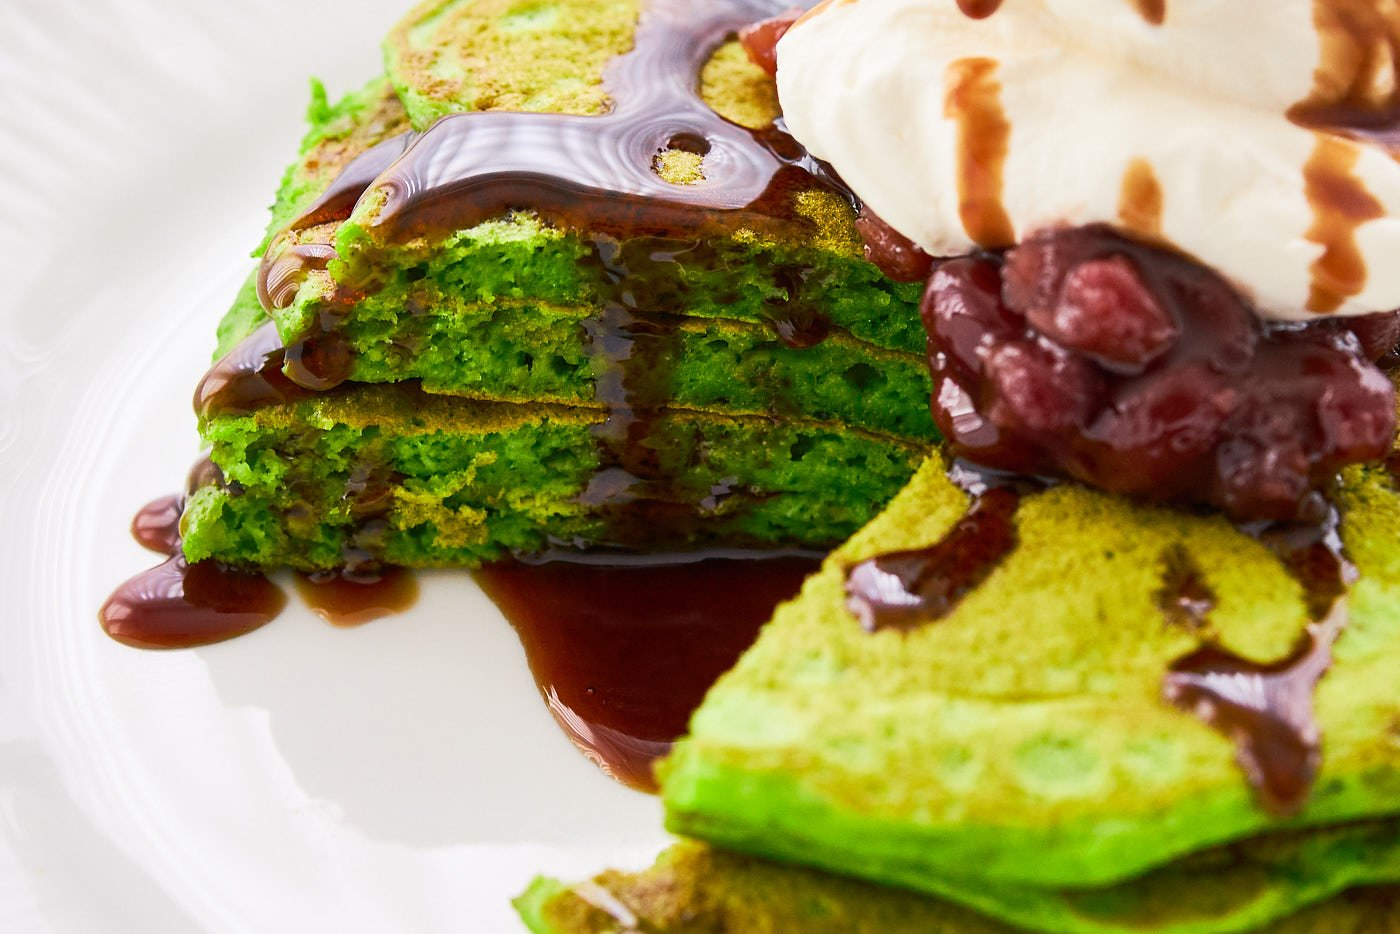 These matcha pancakes are light and fluffy and taste amazing drizzled with kuromitsu syrup.